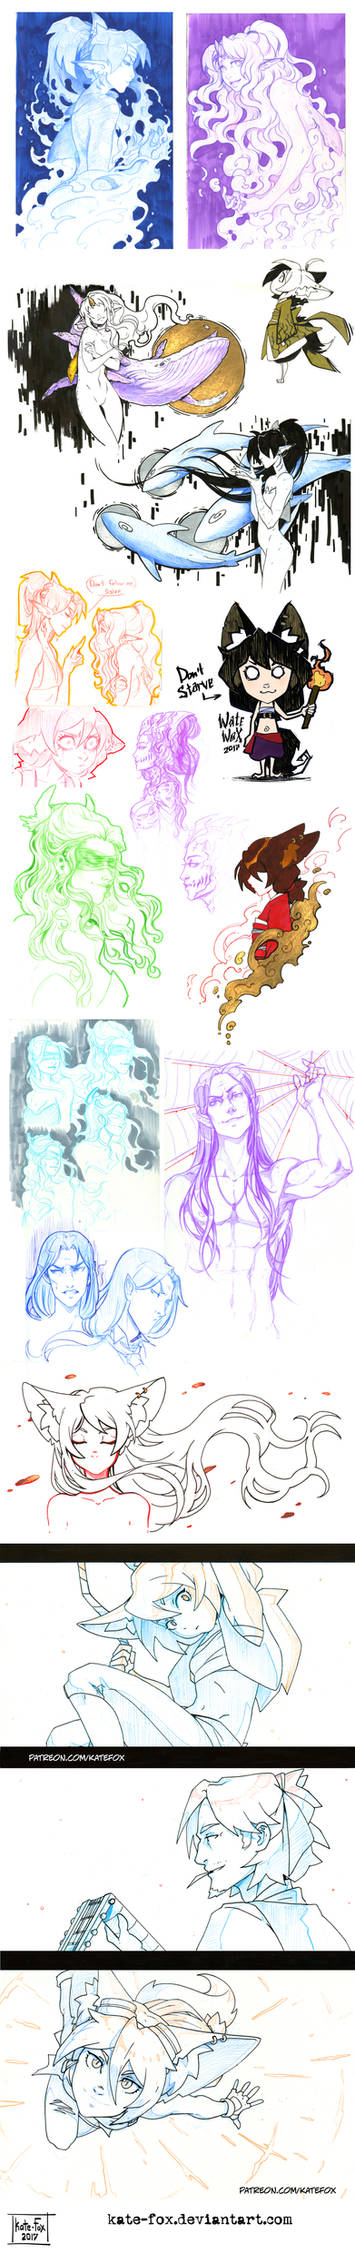 Sketches19